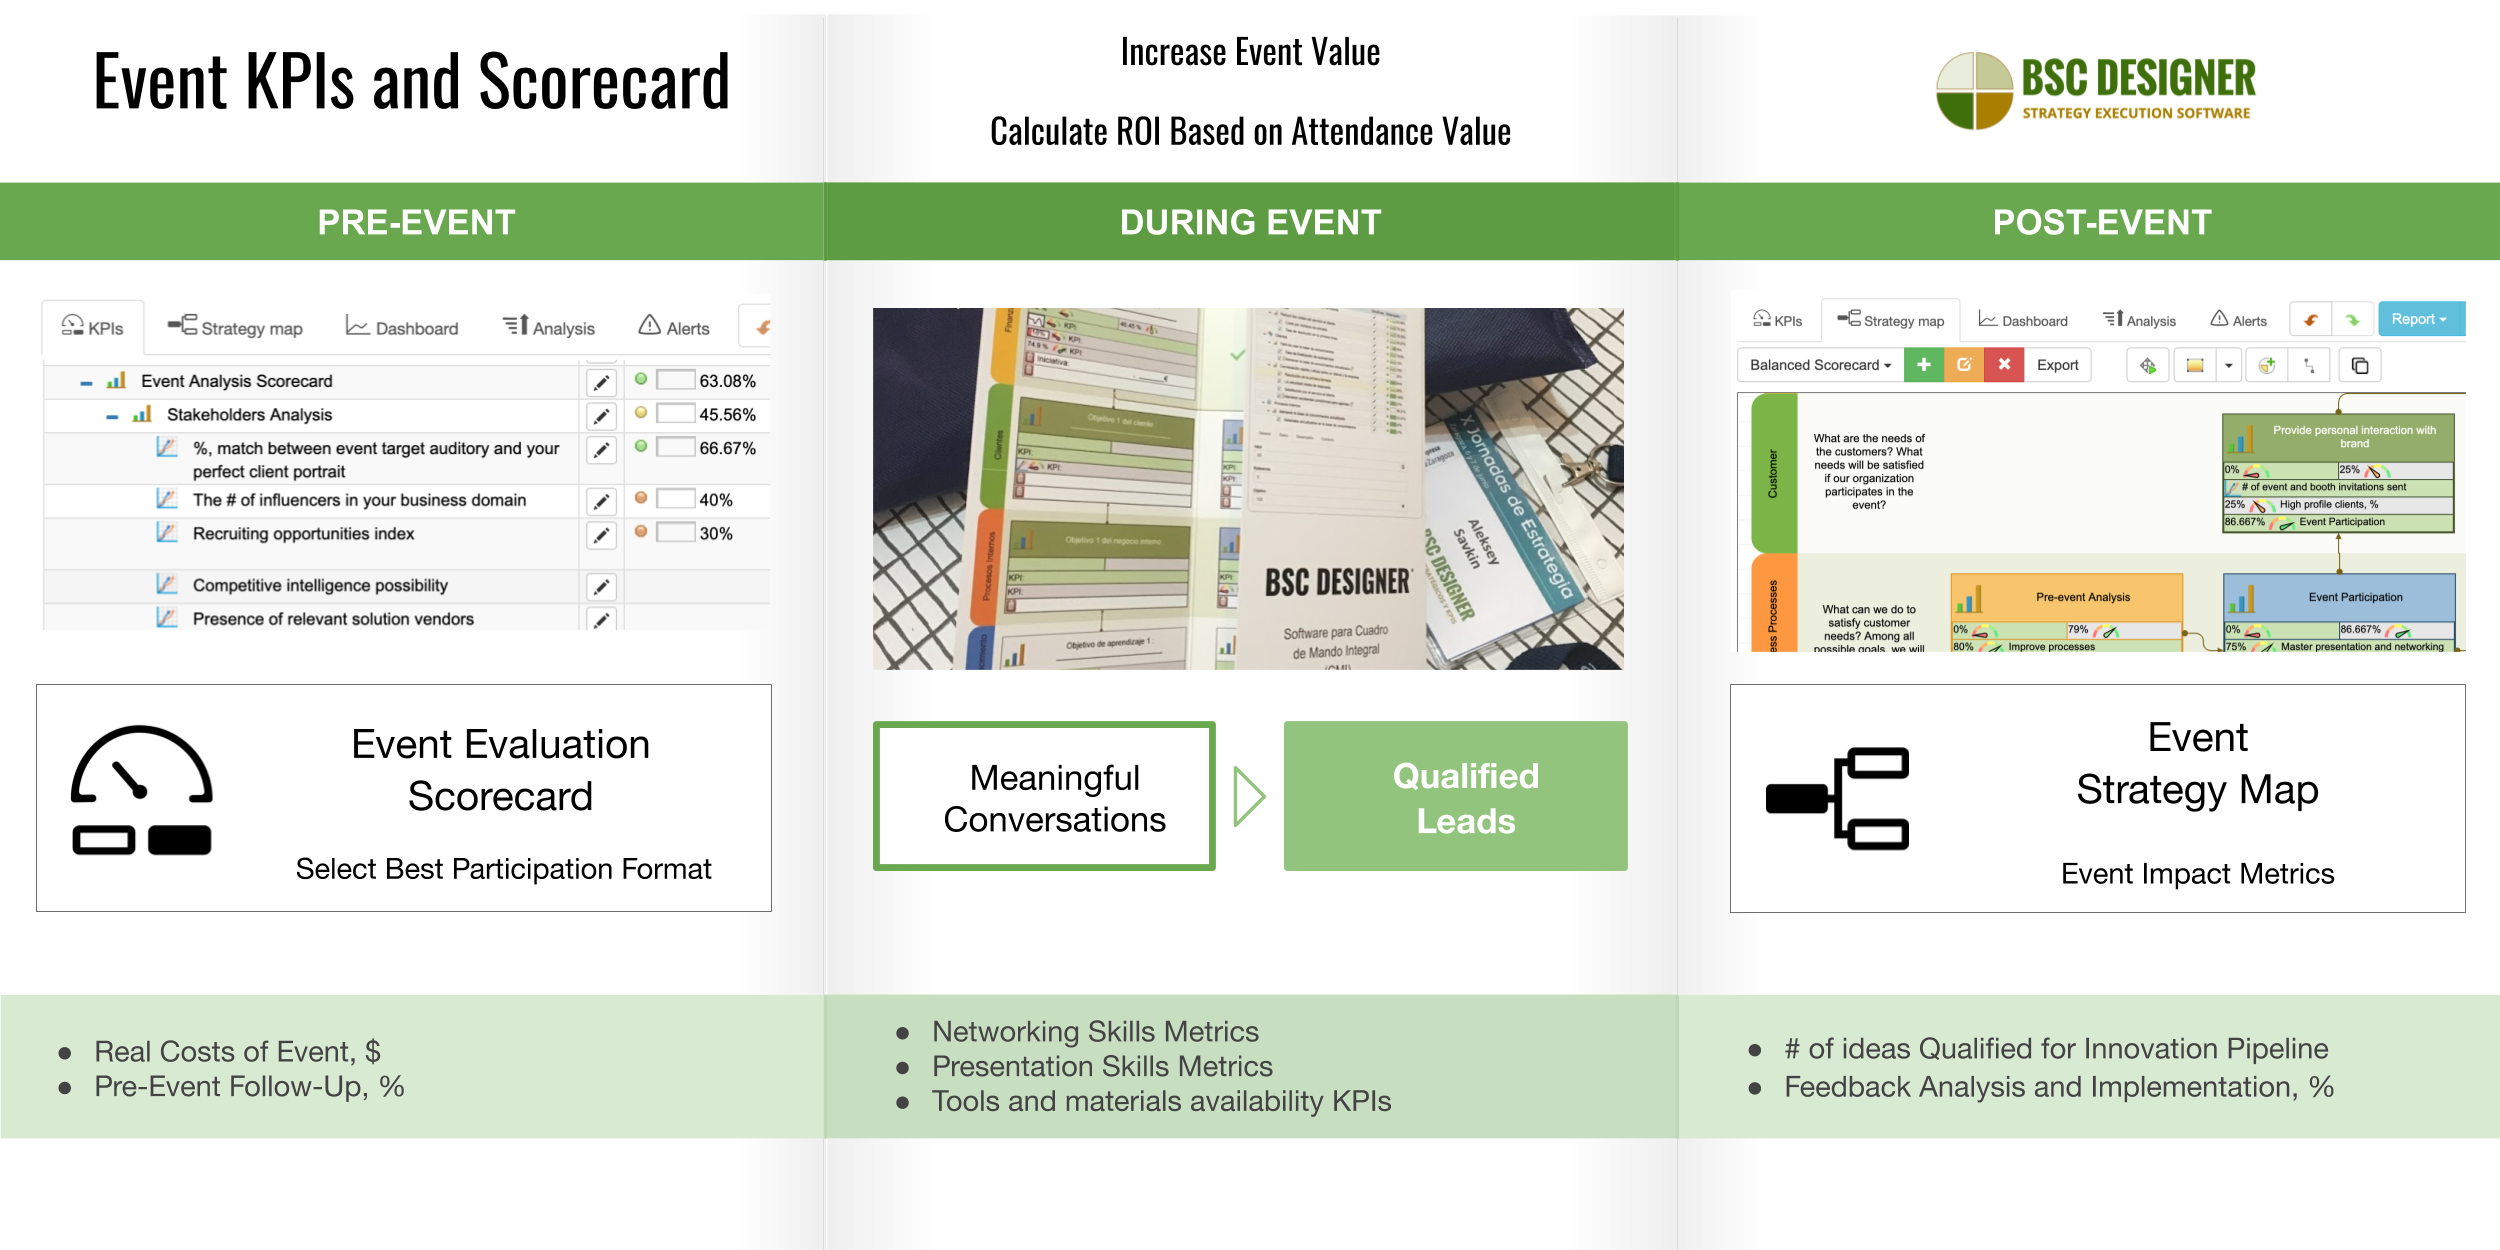 Event KPIs and Scorecard: Increase Event Value + Calculate ROI Based on Attendance Value